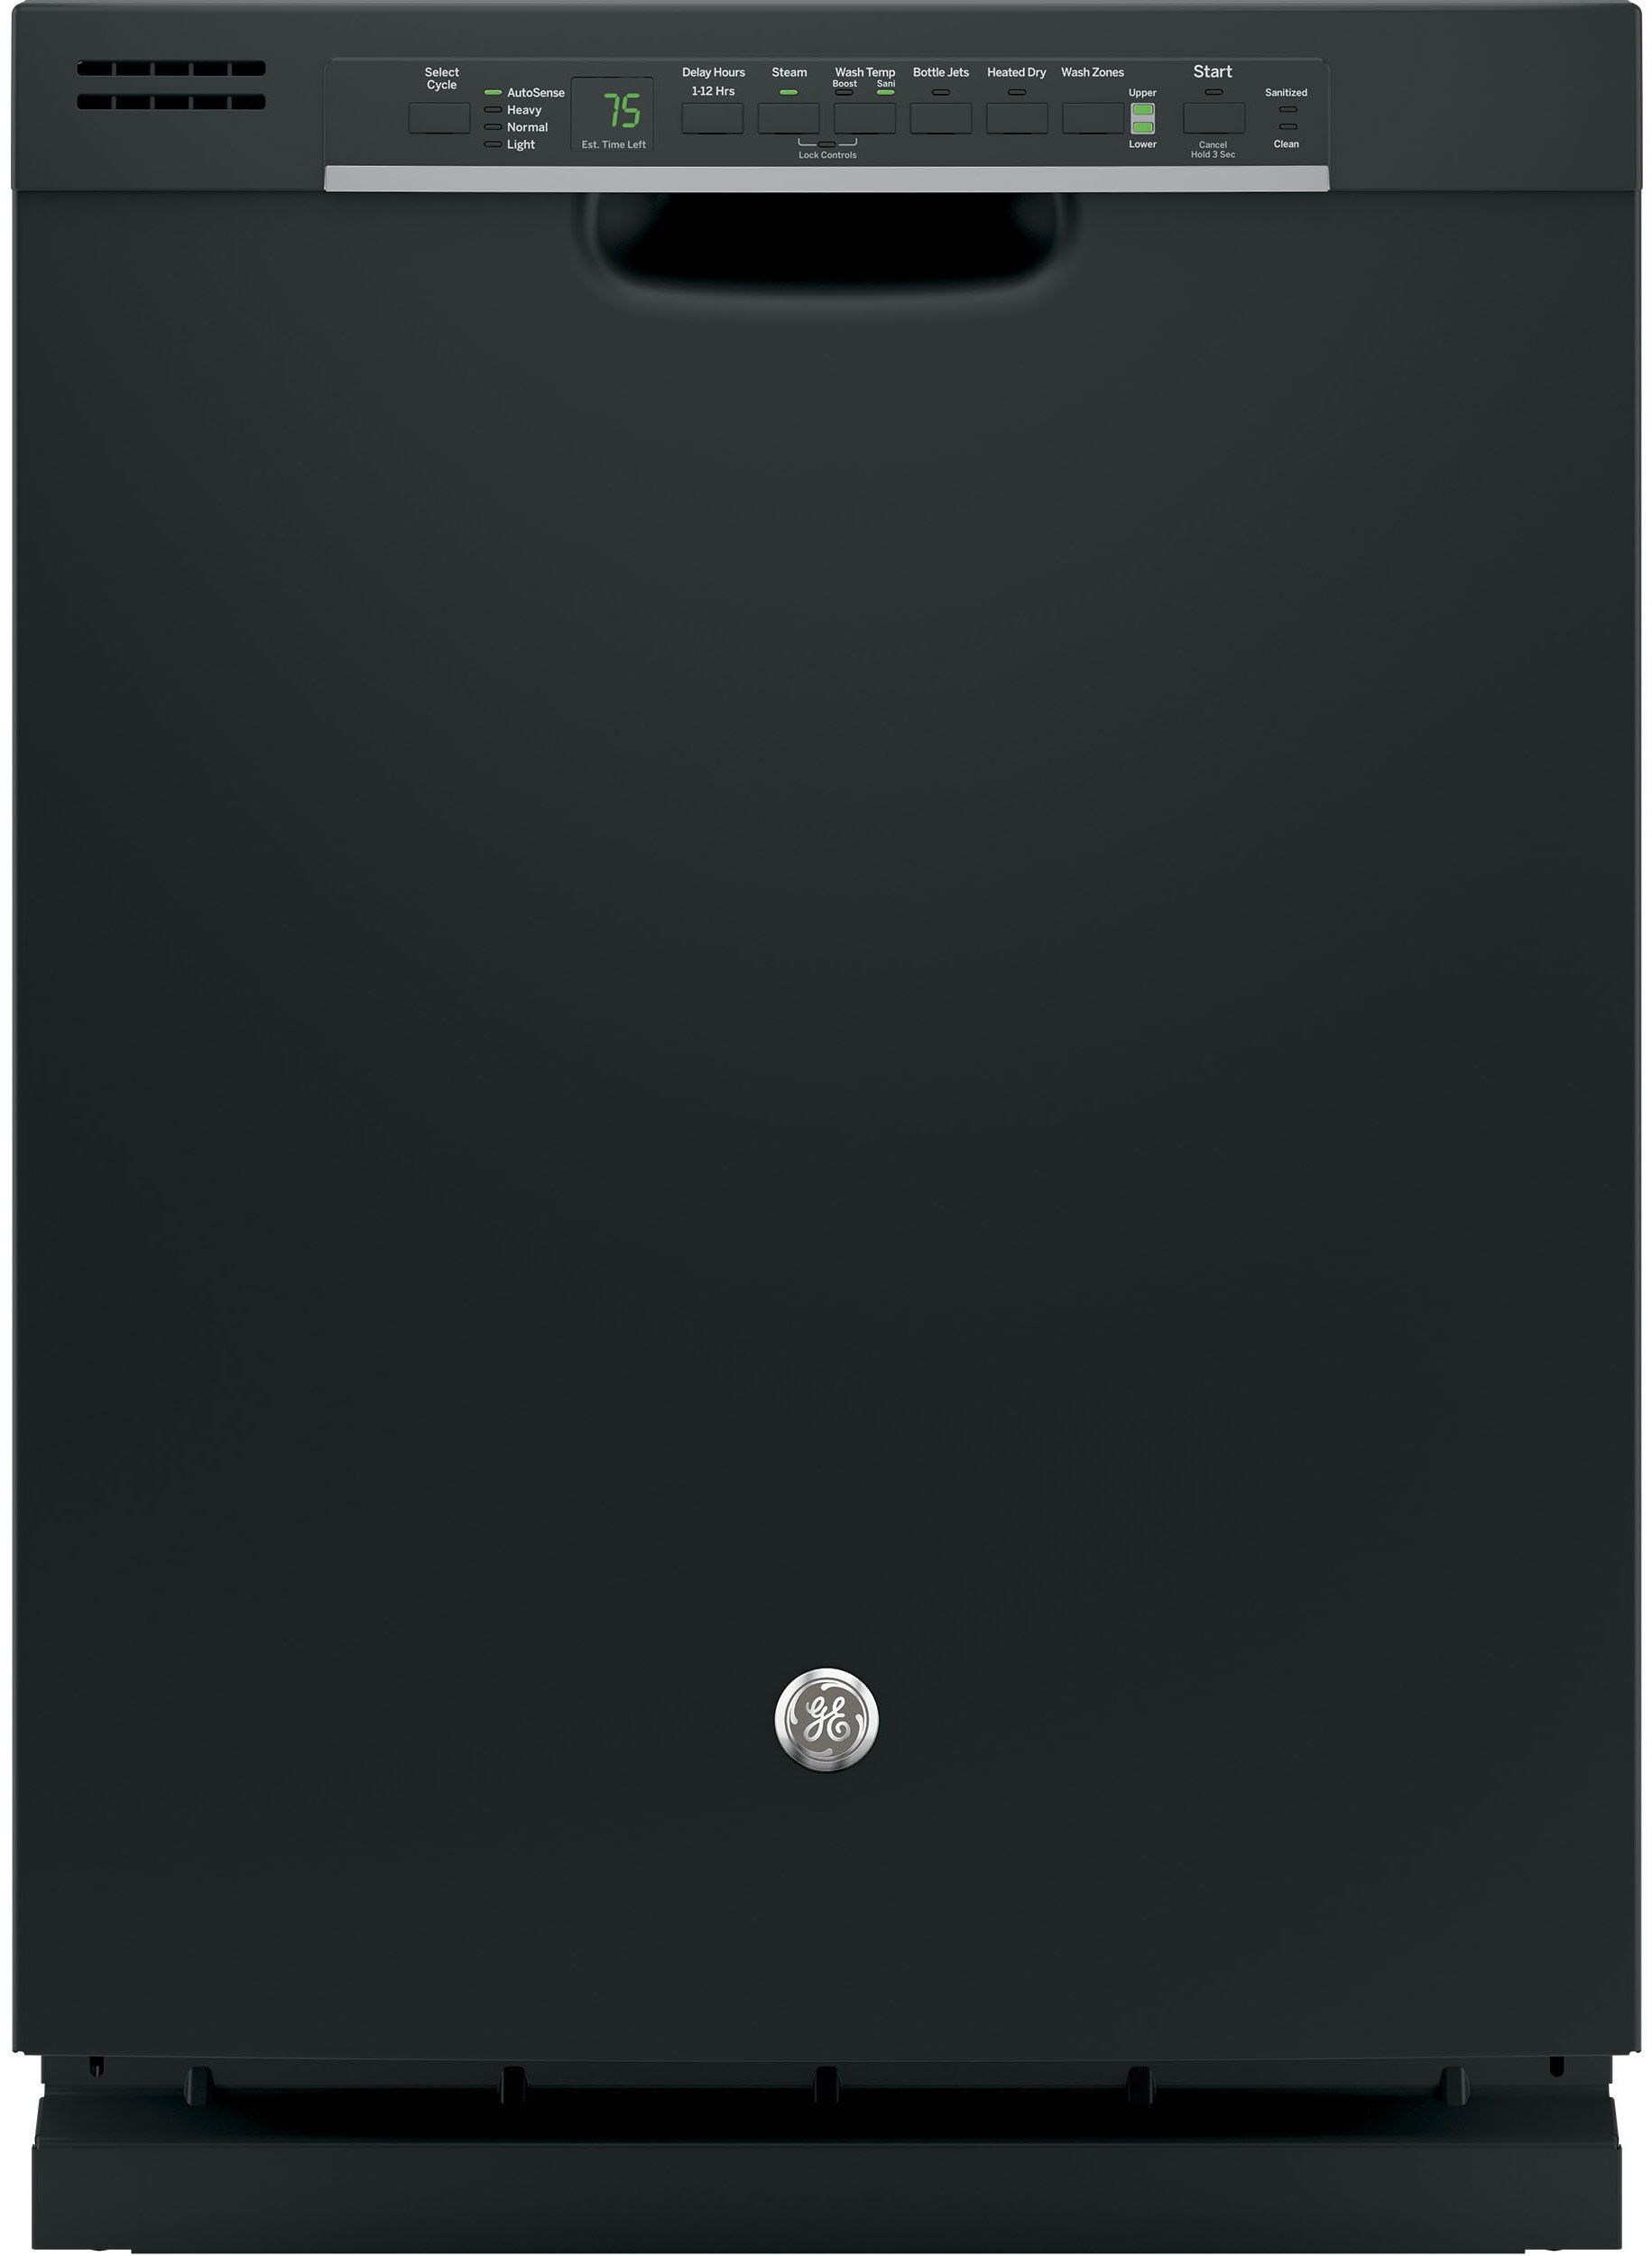 The Ge Gdf610 Is Affordable Has A Ton Of Features And Gets Dishes Both Clean And Dry Black Dishwasher Built In Dishwasher Steel Tub